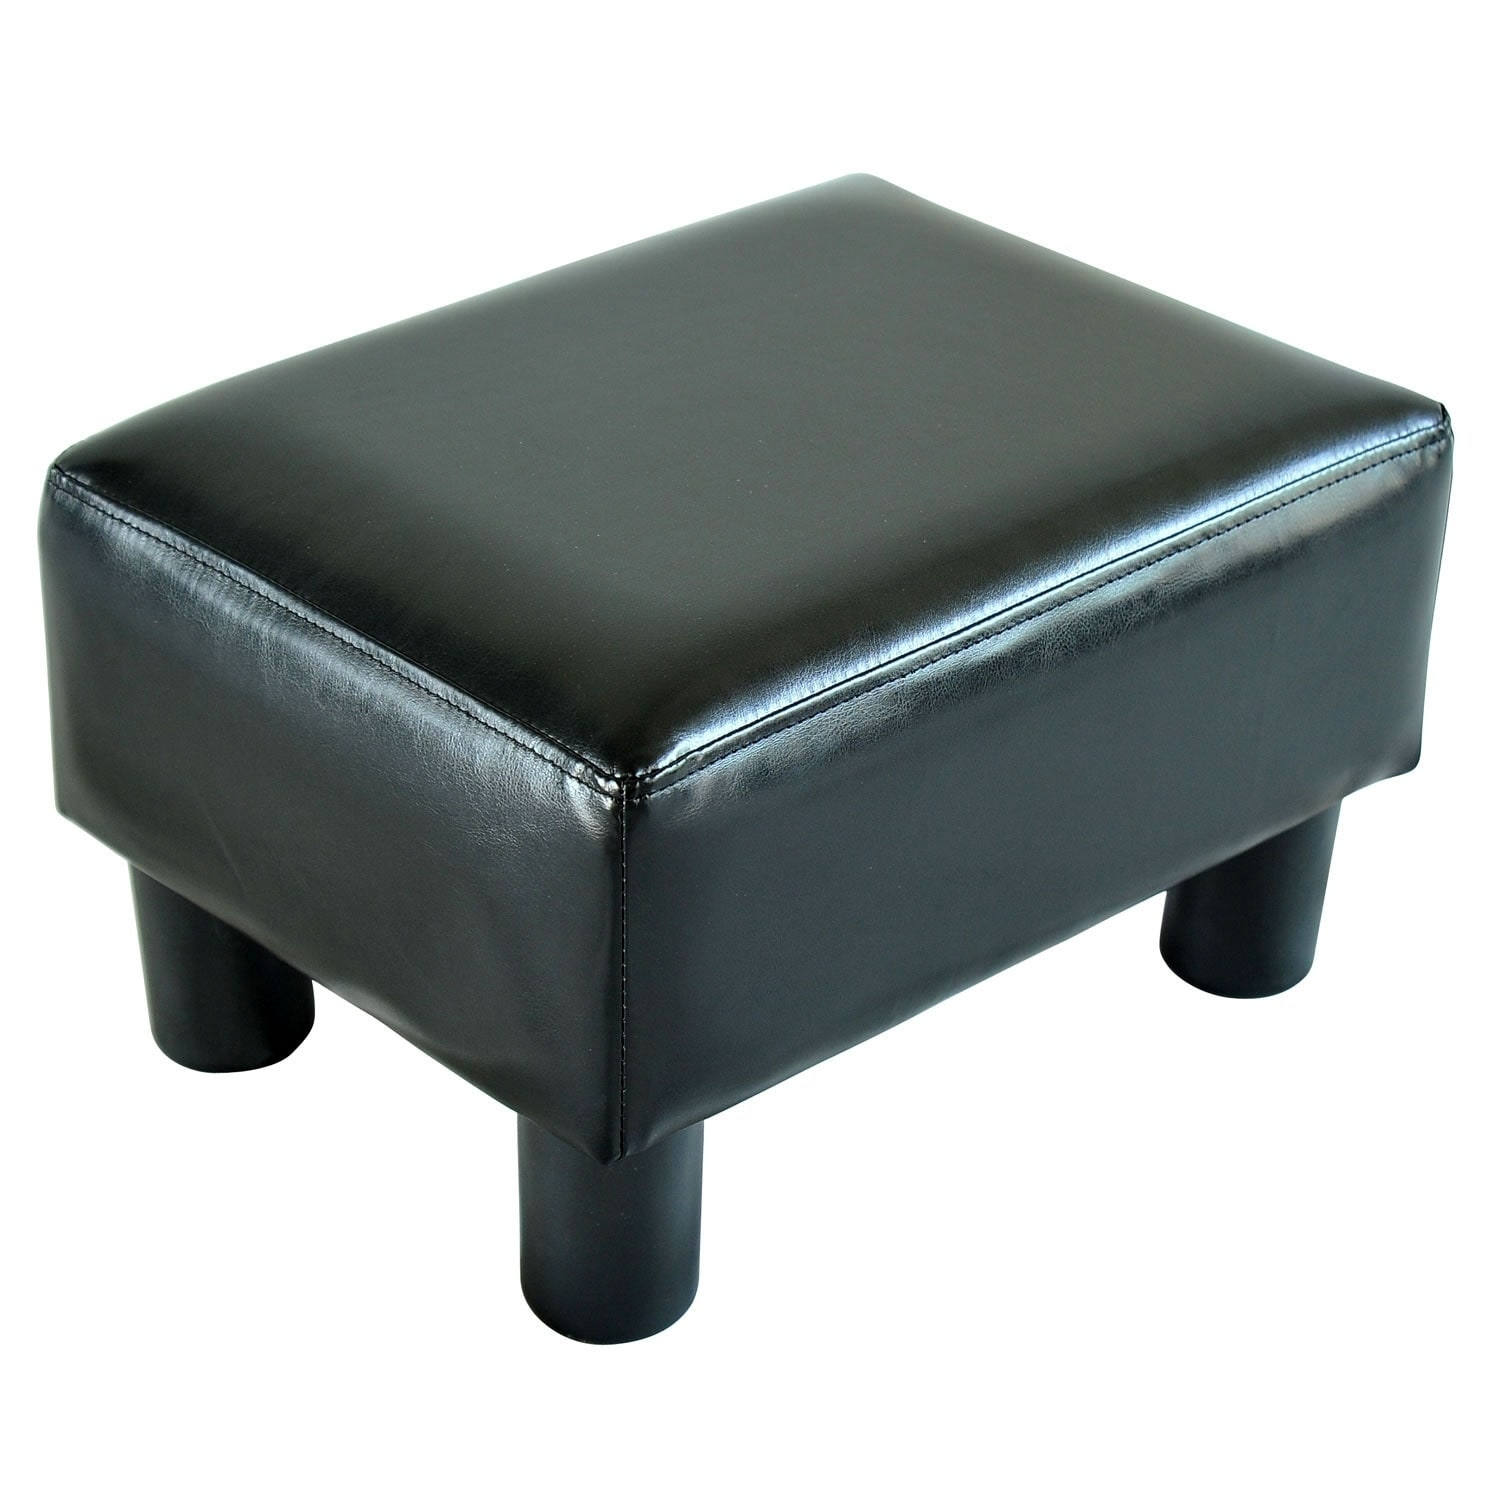 Shop porch den meadow modern small black faux leather ottoman footrest stool free shipping on orders over 45 overstock com 22580931